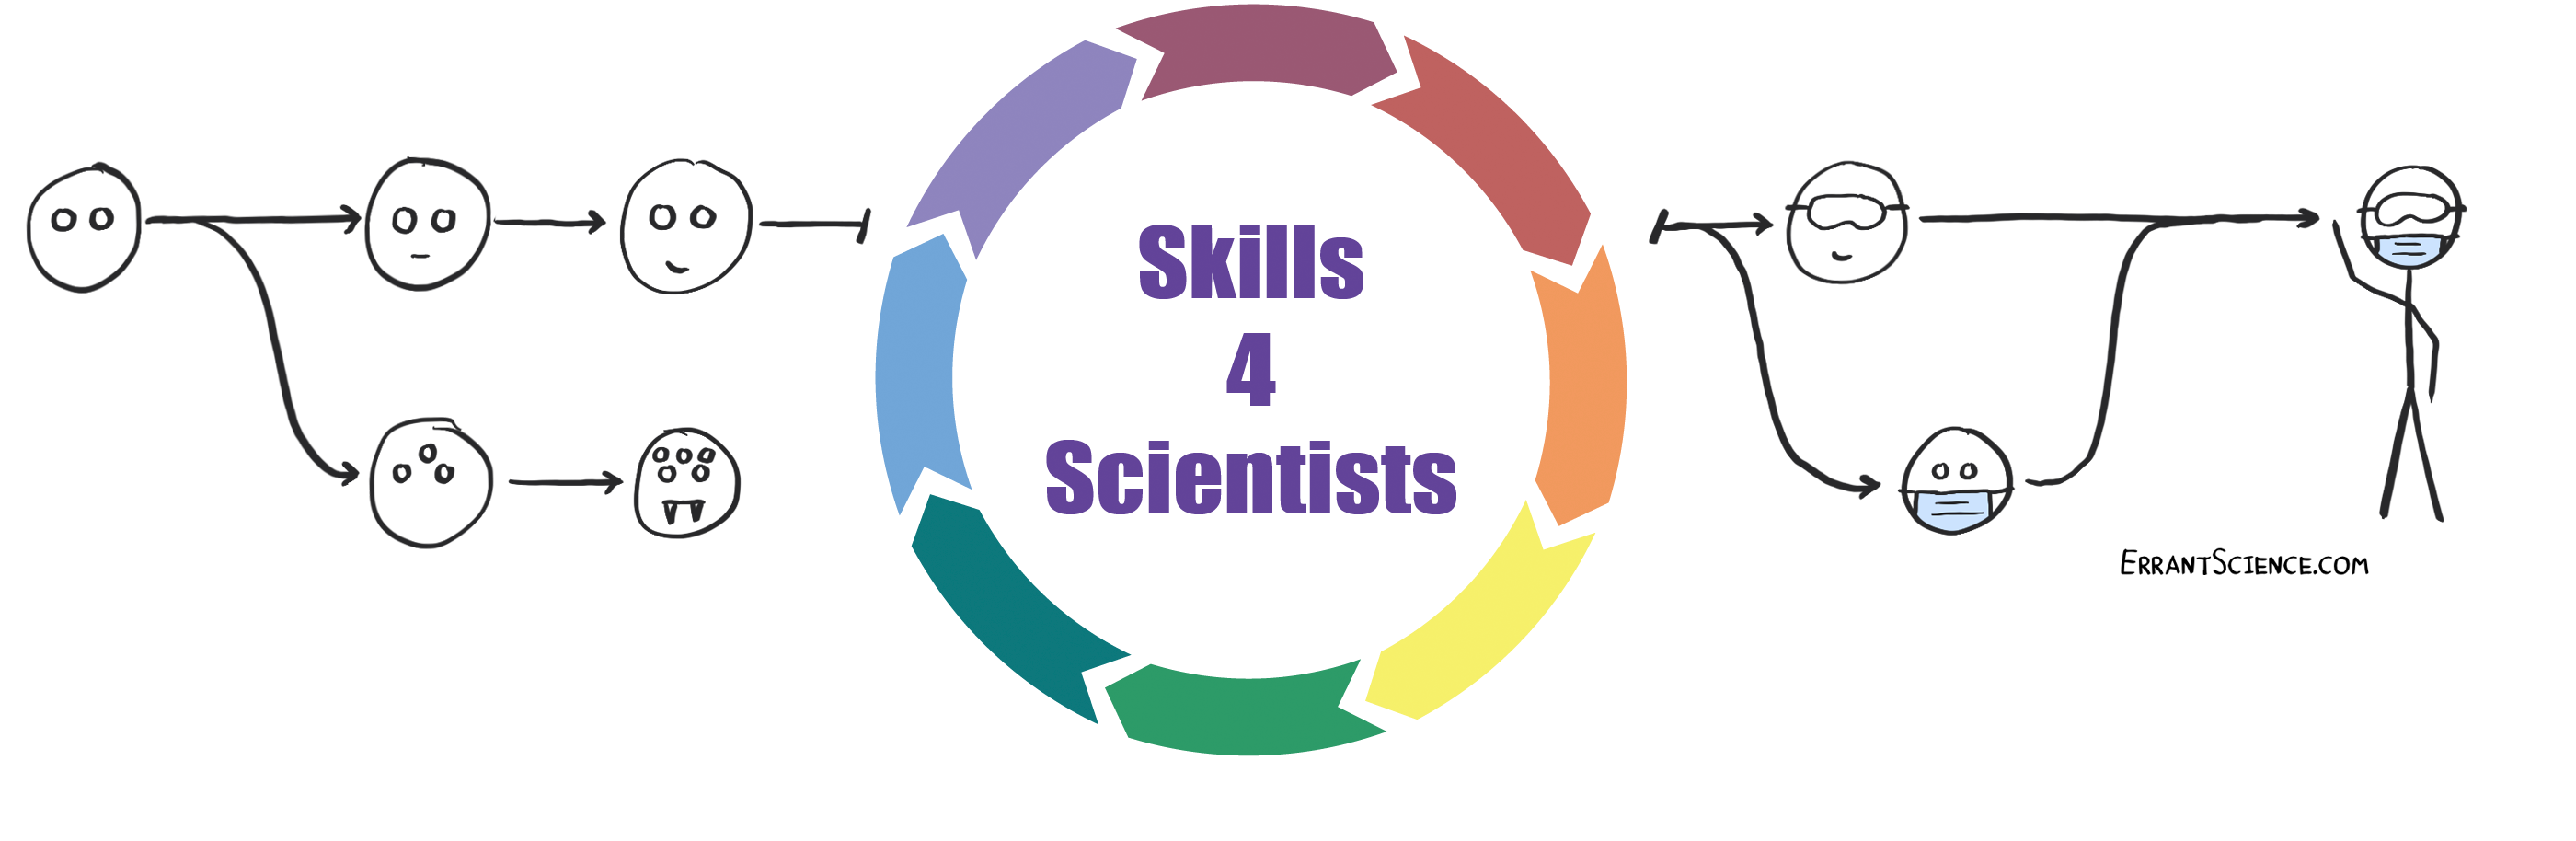 Read more about the article 21/07/21 – Skills4Scientists: Version Control & LaTeX